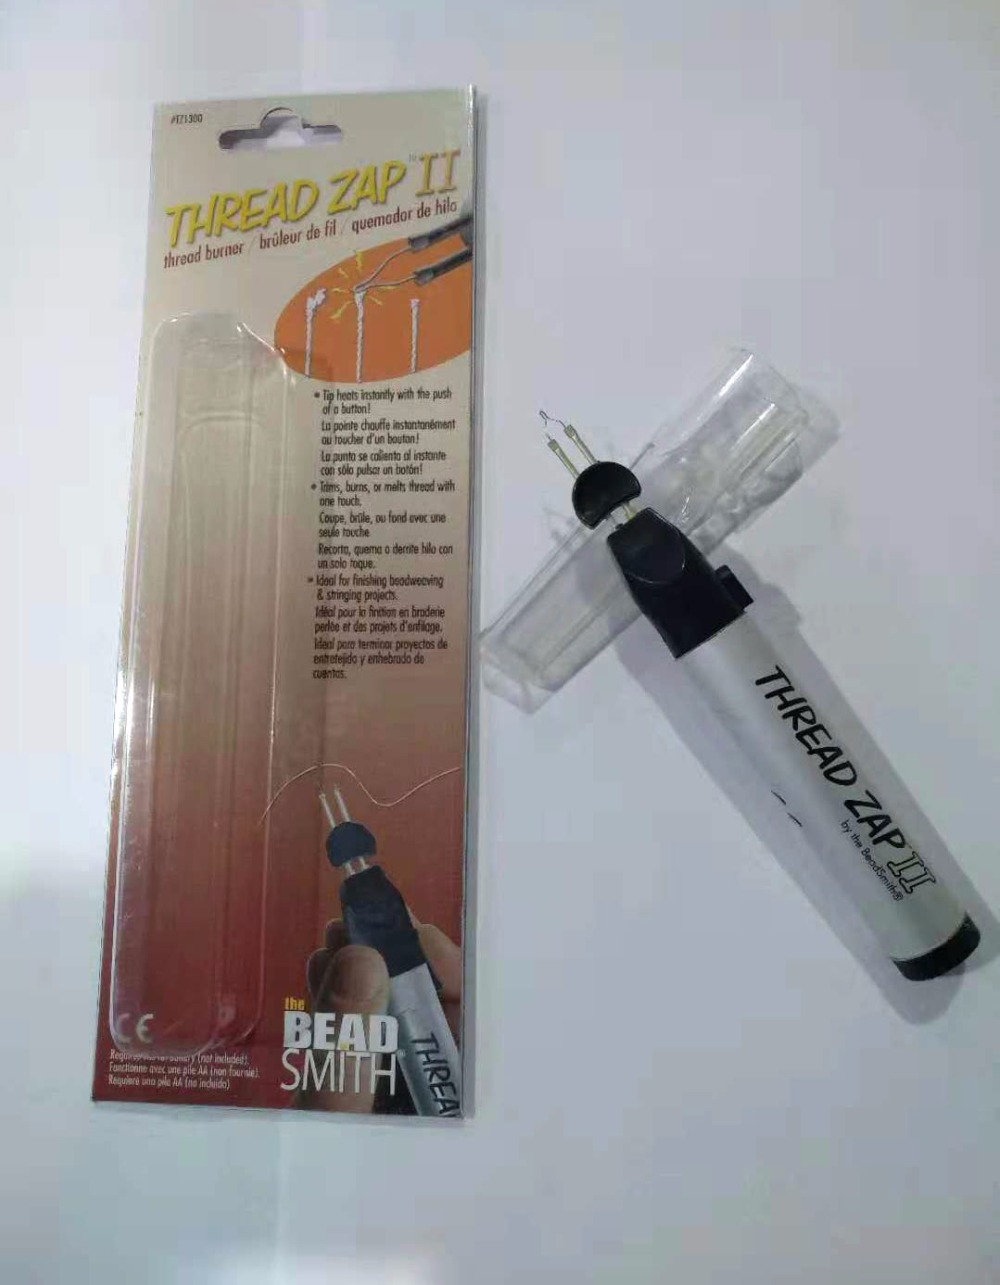 Thread-Burner Jewelry-Tools Bead Welding-Wax-Pen Zap-Ii Smith-Thread for Crayons